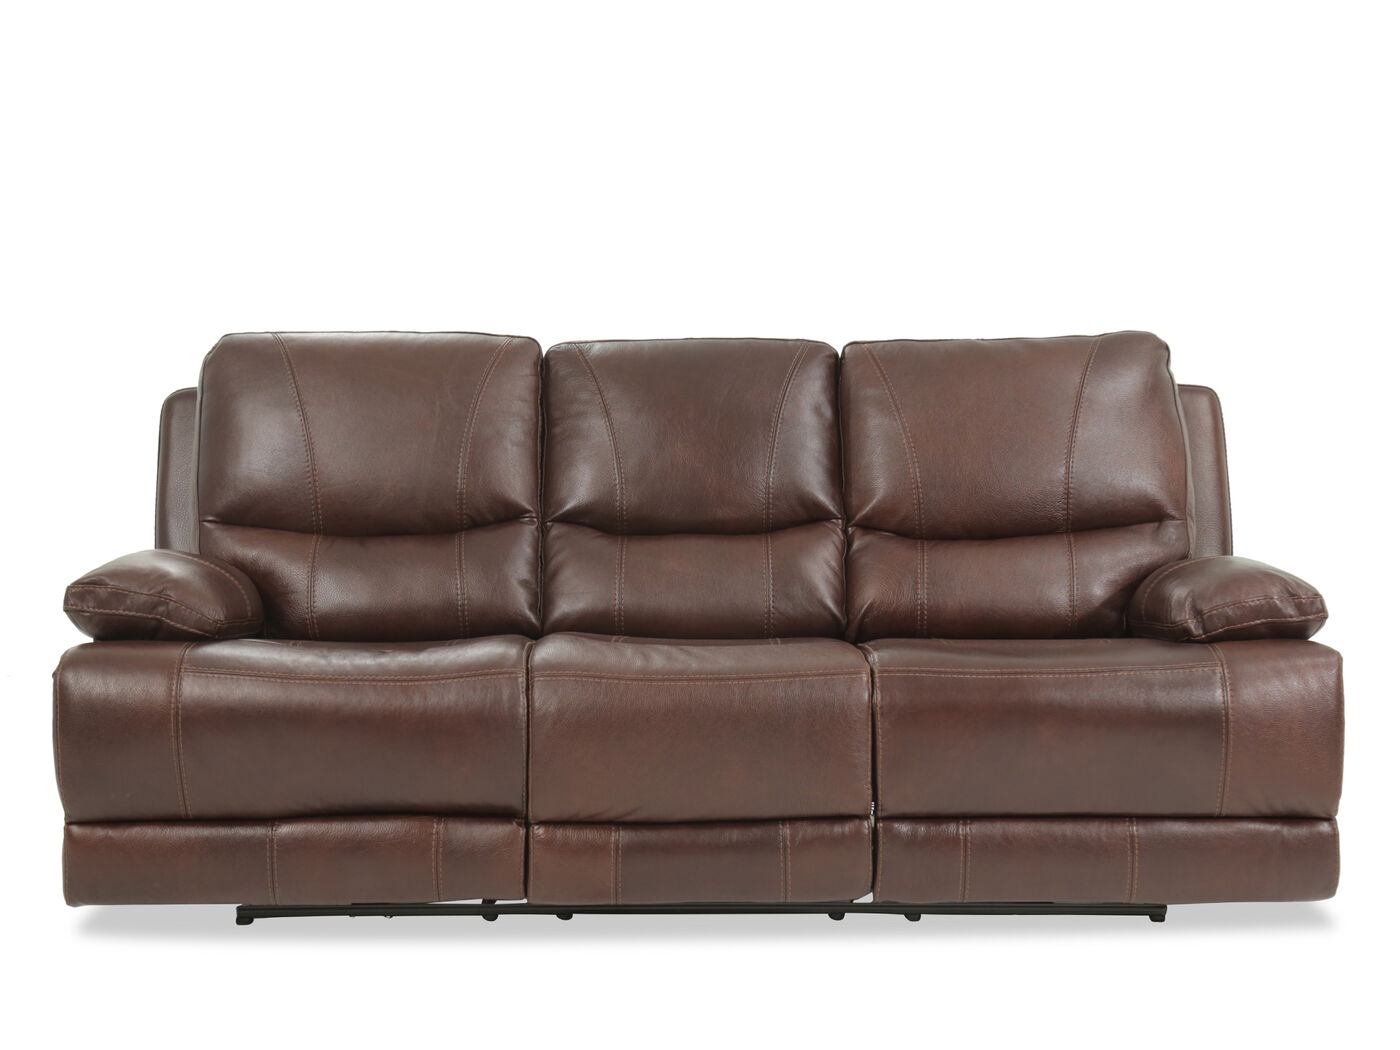 mathis brothers leather reclining sofas www energywarden net